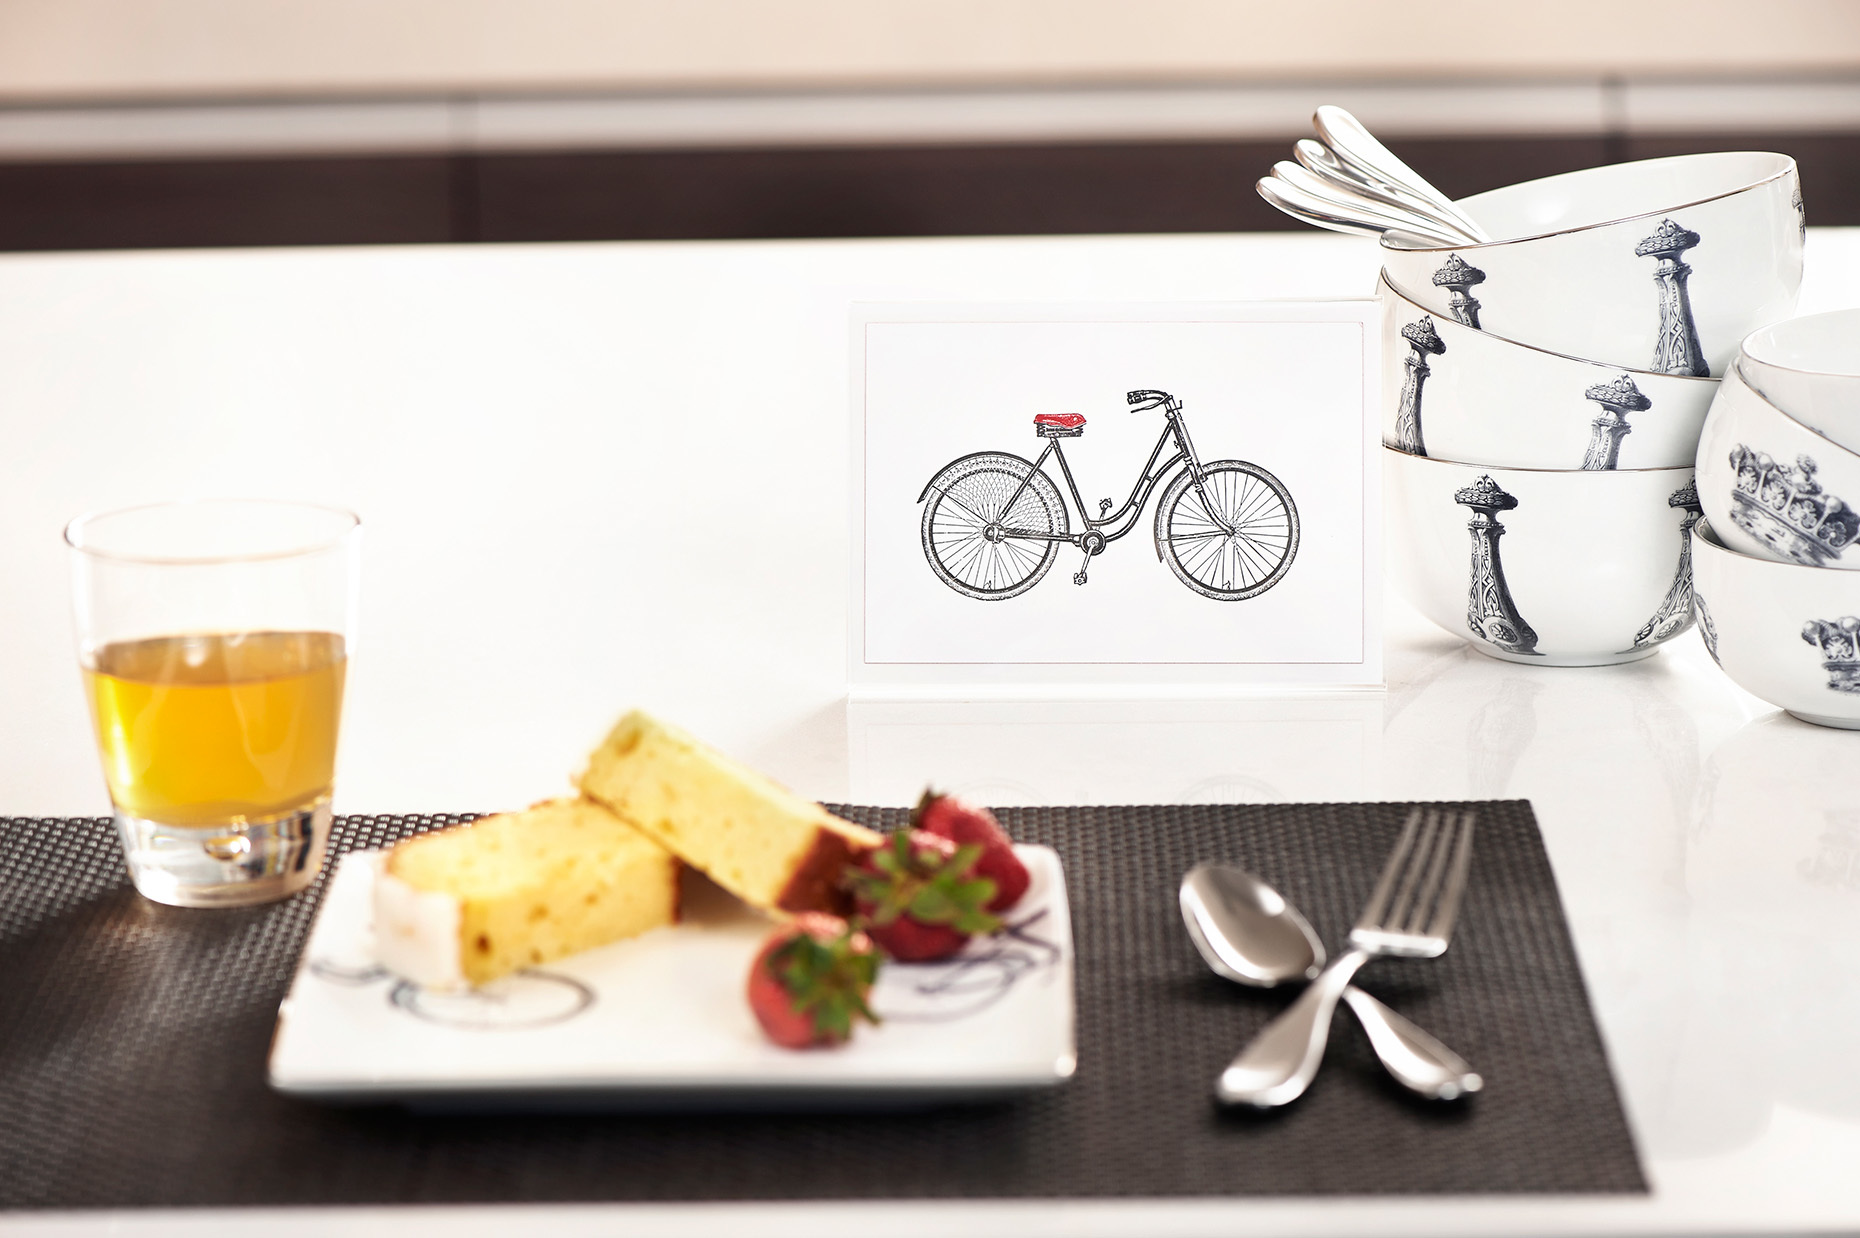 Mitchell-Black_Dishware_Interior_Bicycle-Bowl-Plate-Set_RHanelPhotography_01